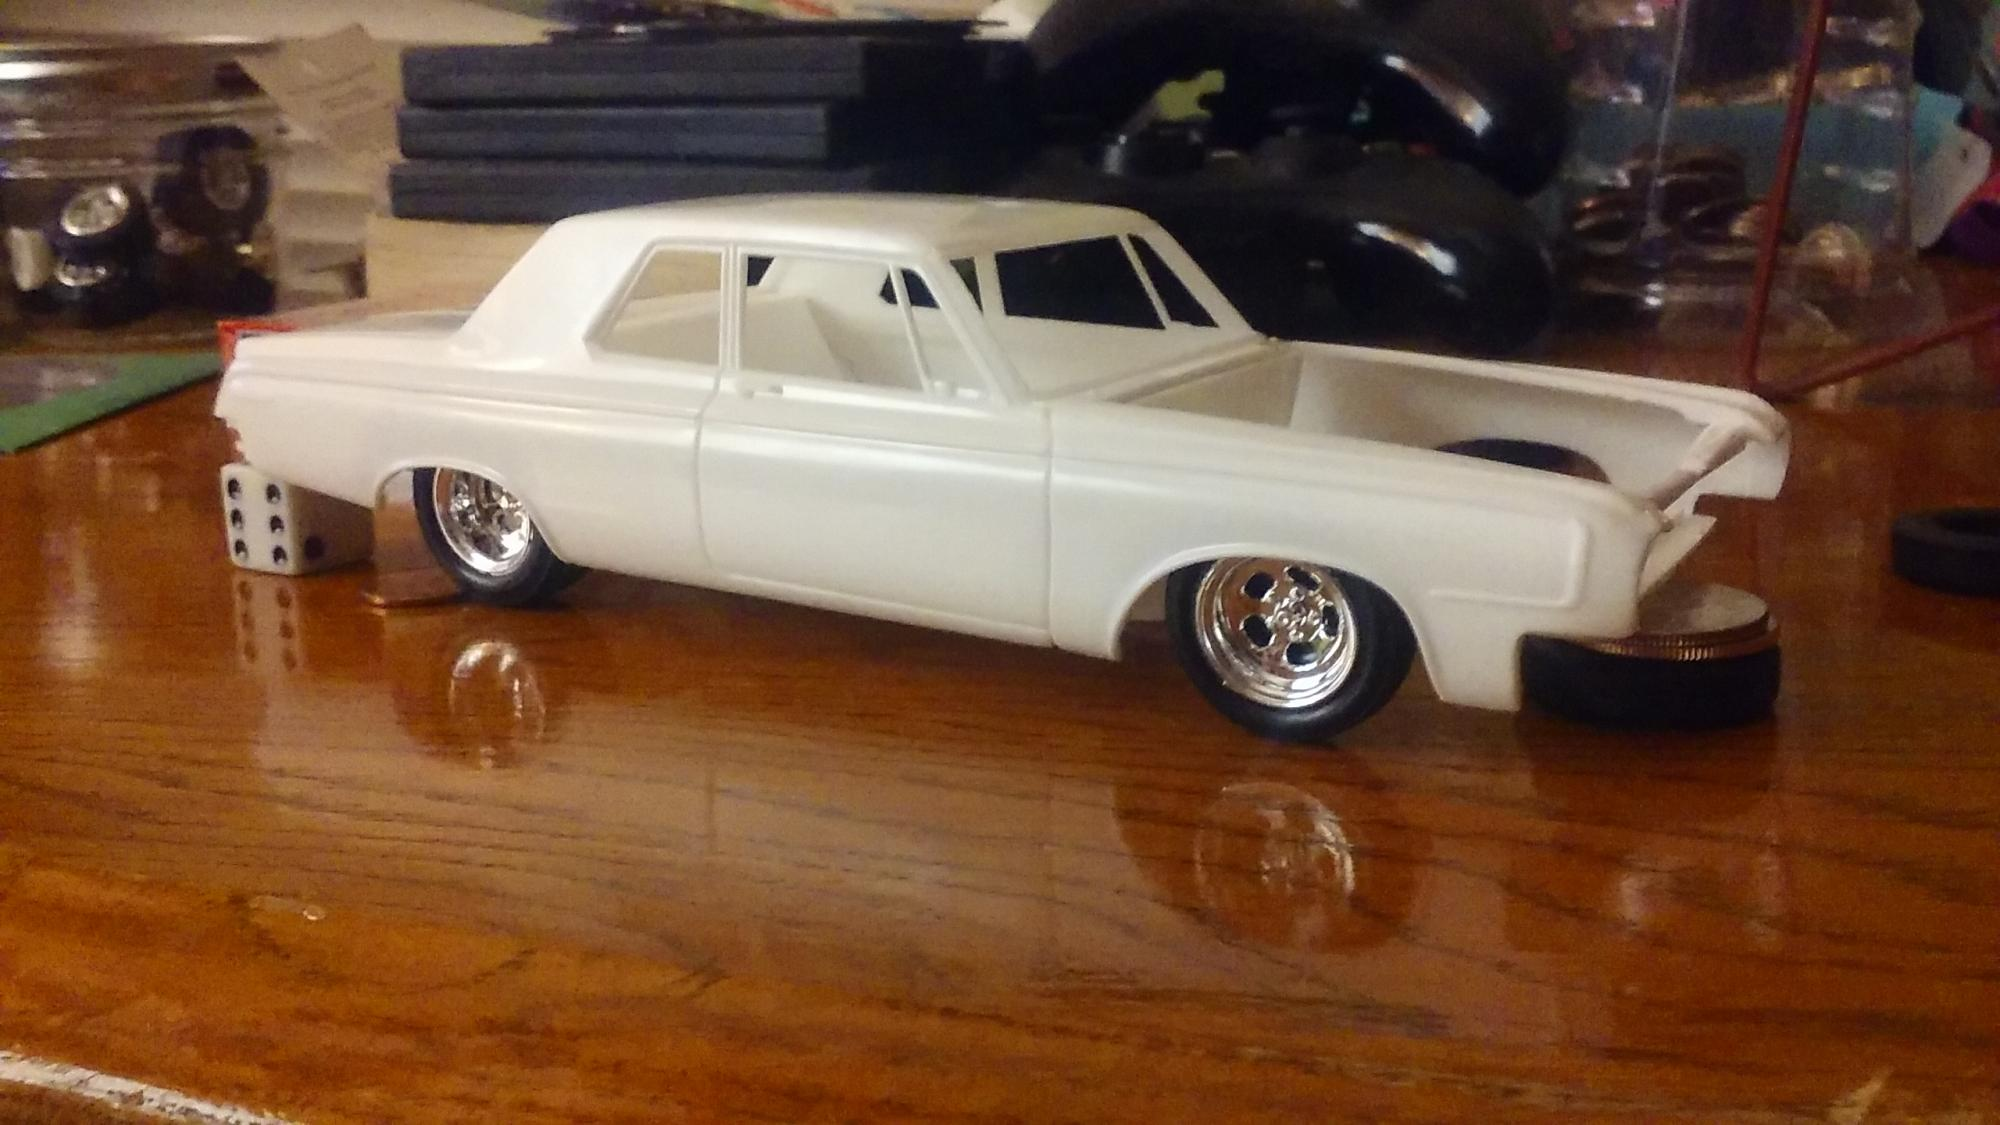 New Wip 64 Dodge 330 Color Me Gone On The Workbench Model Cars 1964 Max Wedge 20160508 124728